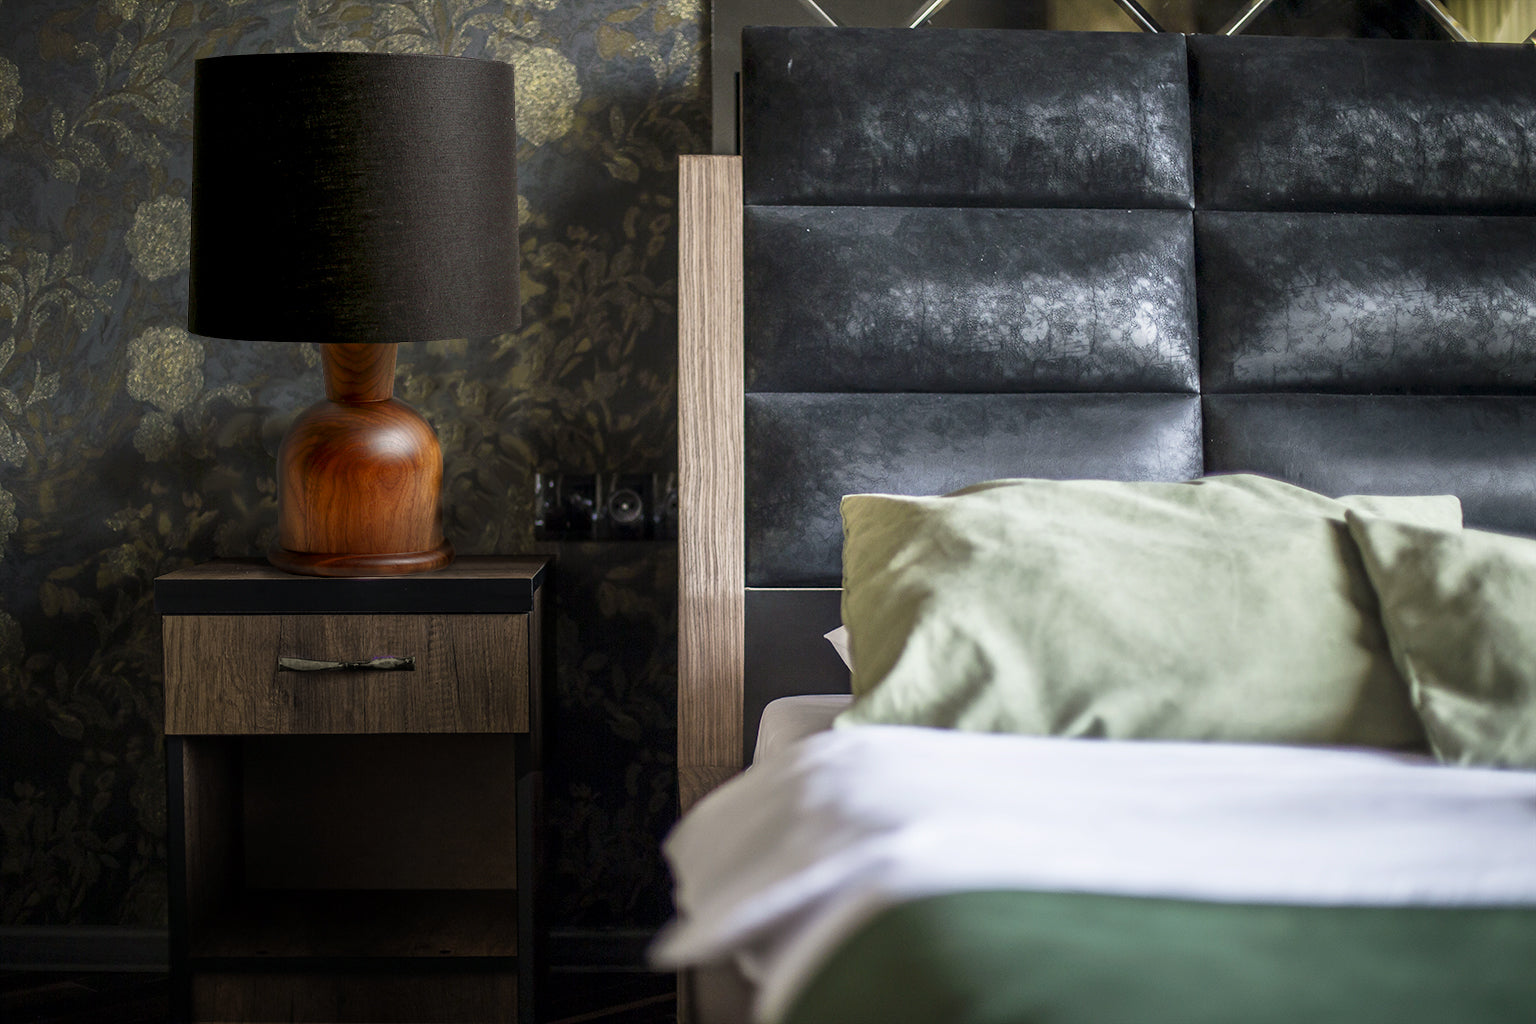 Contemporary hospitality bedroom with Beacon Table Lamp by Studio DUNN in Walnut and Black Linen